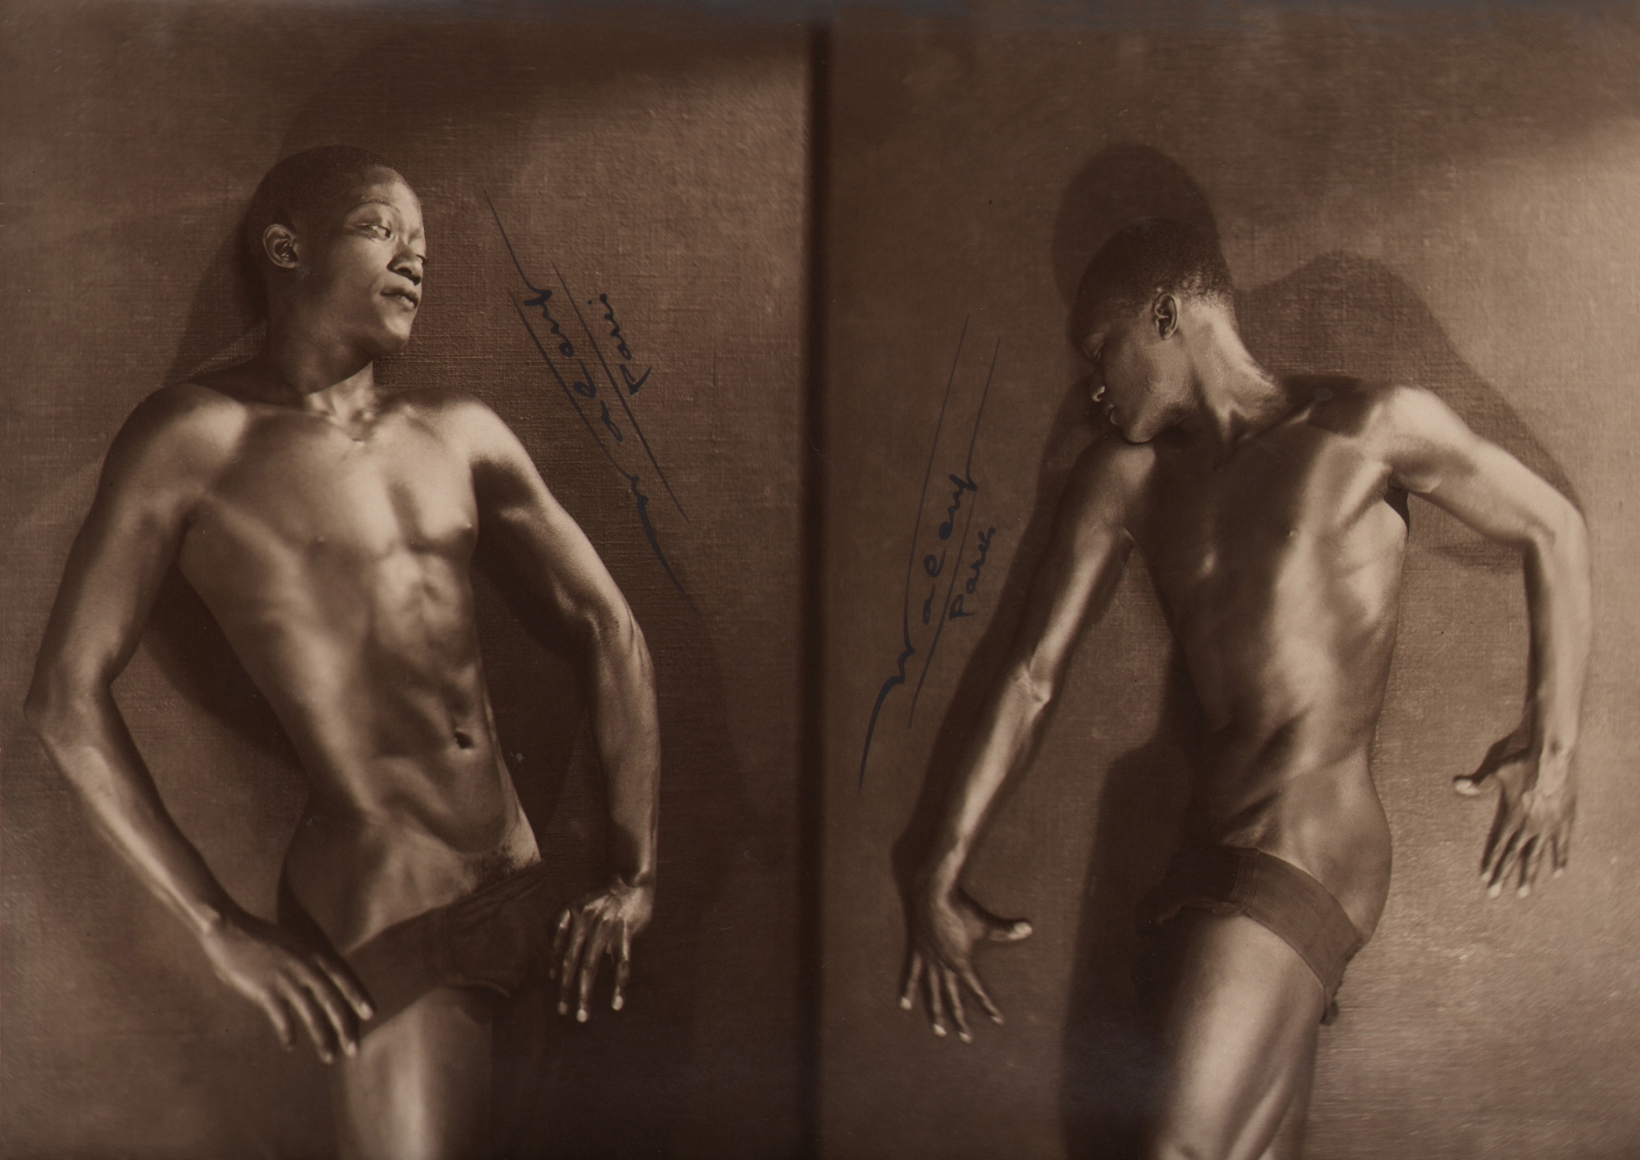 Lucien Walery, Feral Benga Diptych, c. 1925. Two side by side photos of the shirtless subject, poses are facing each other.